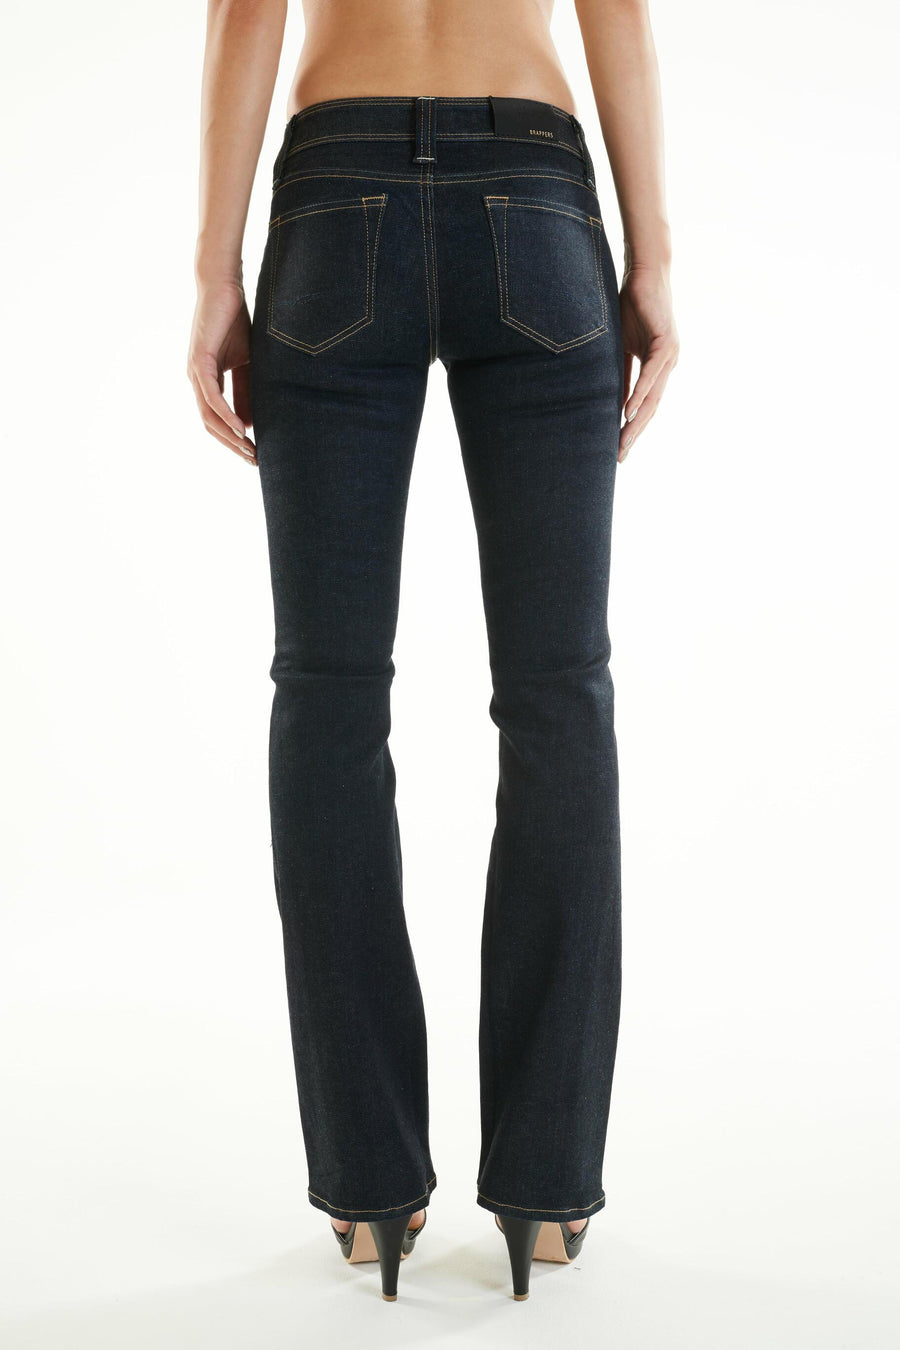 Performance Skinny Flare OW